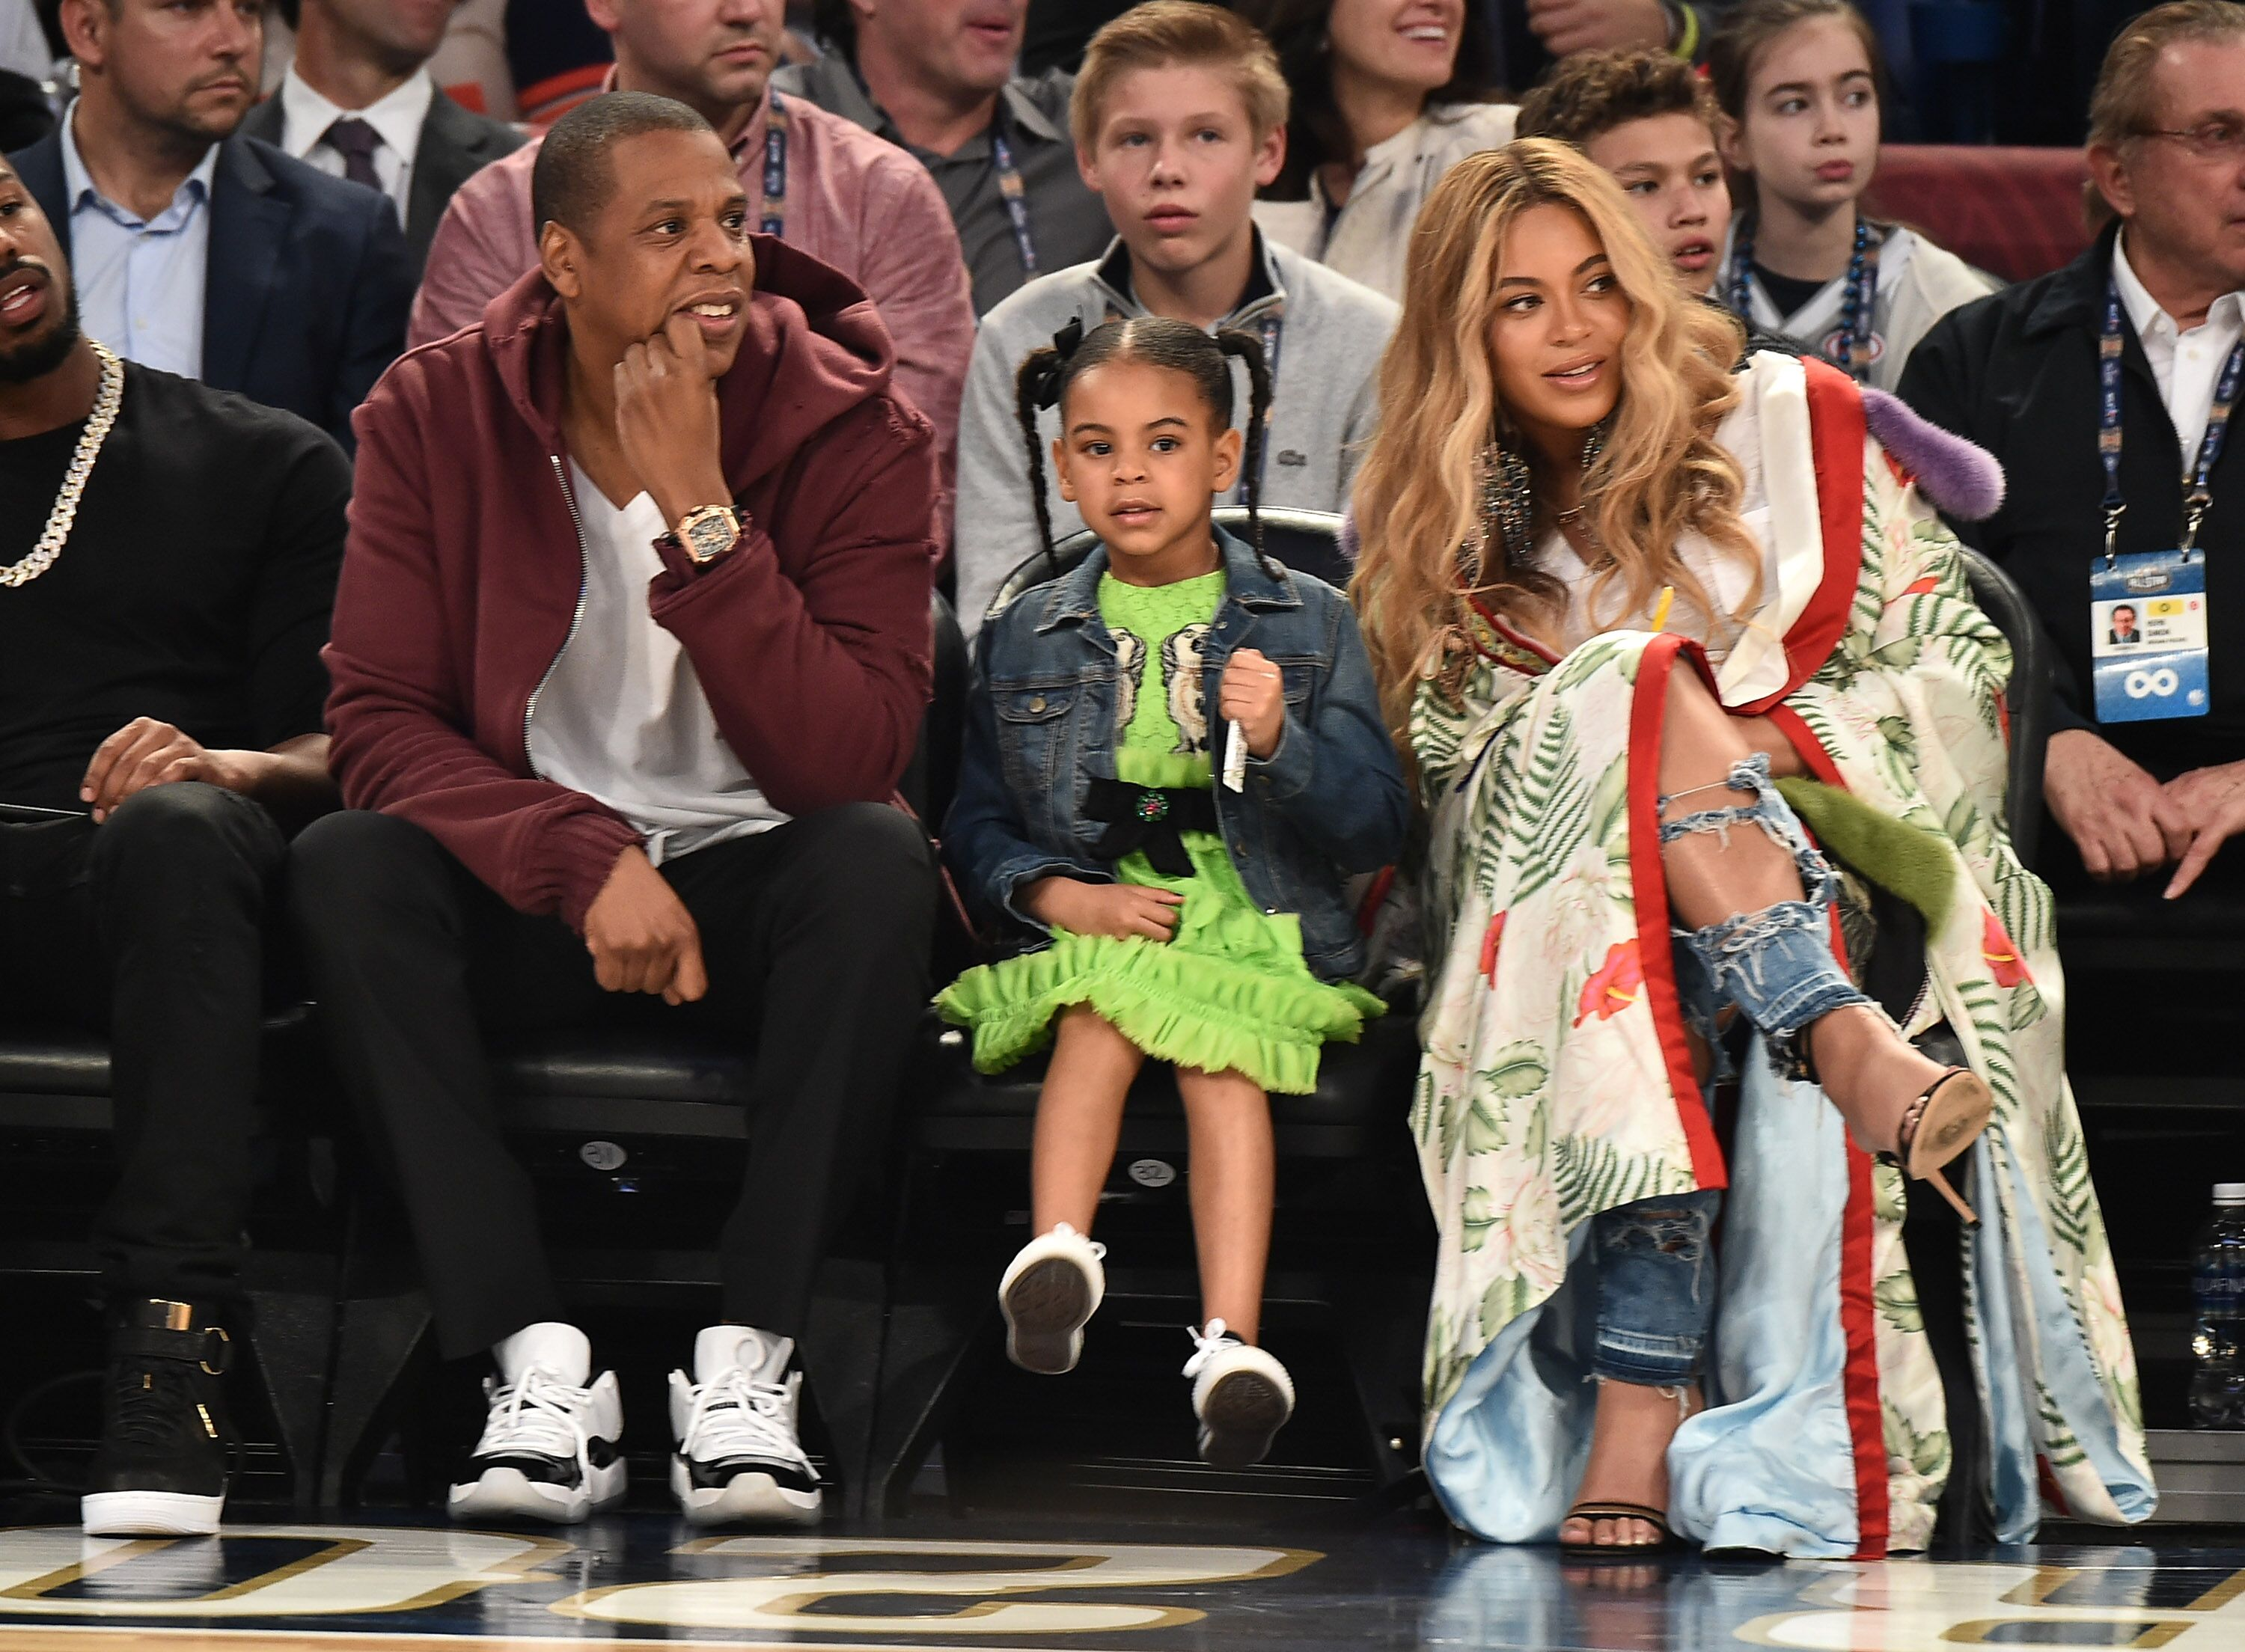 Singer Beyonce, rapper Jay-Z, and daughter Blue Ivy Carter at an NBA All Star game/ Source: Getty Images